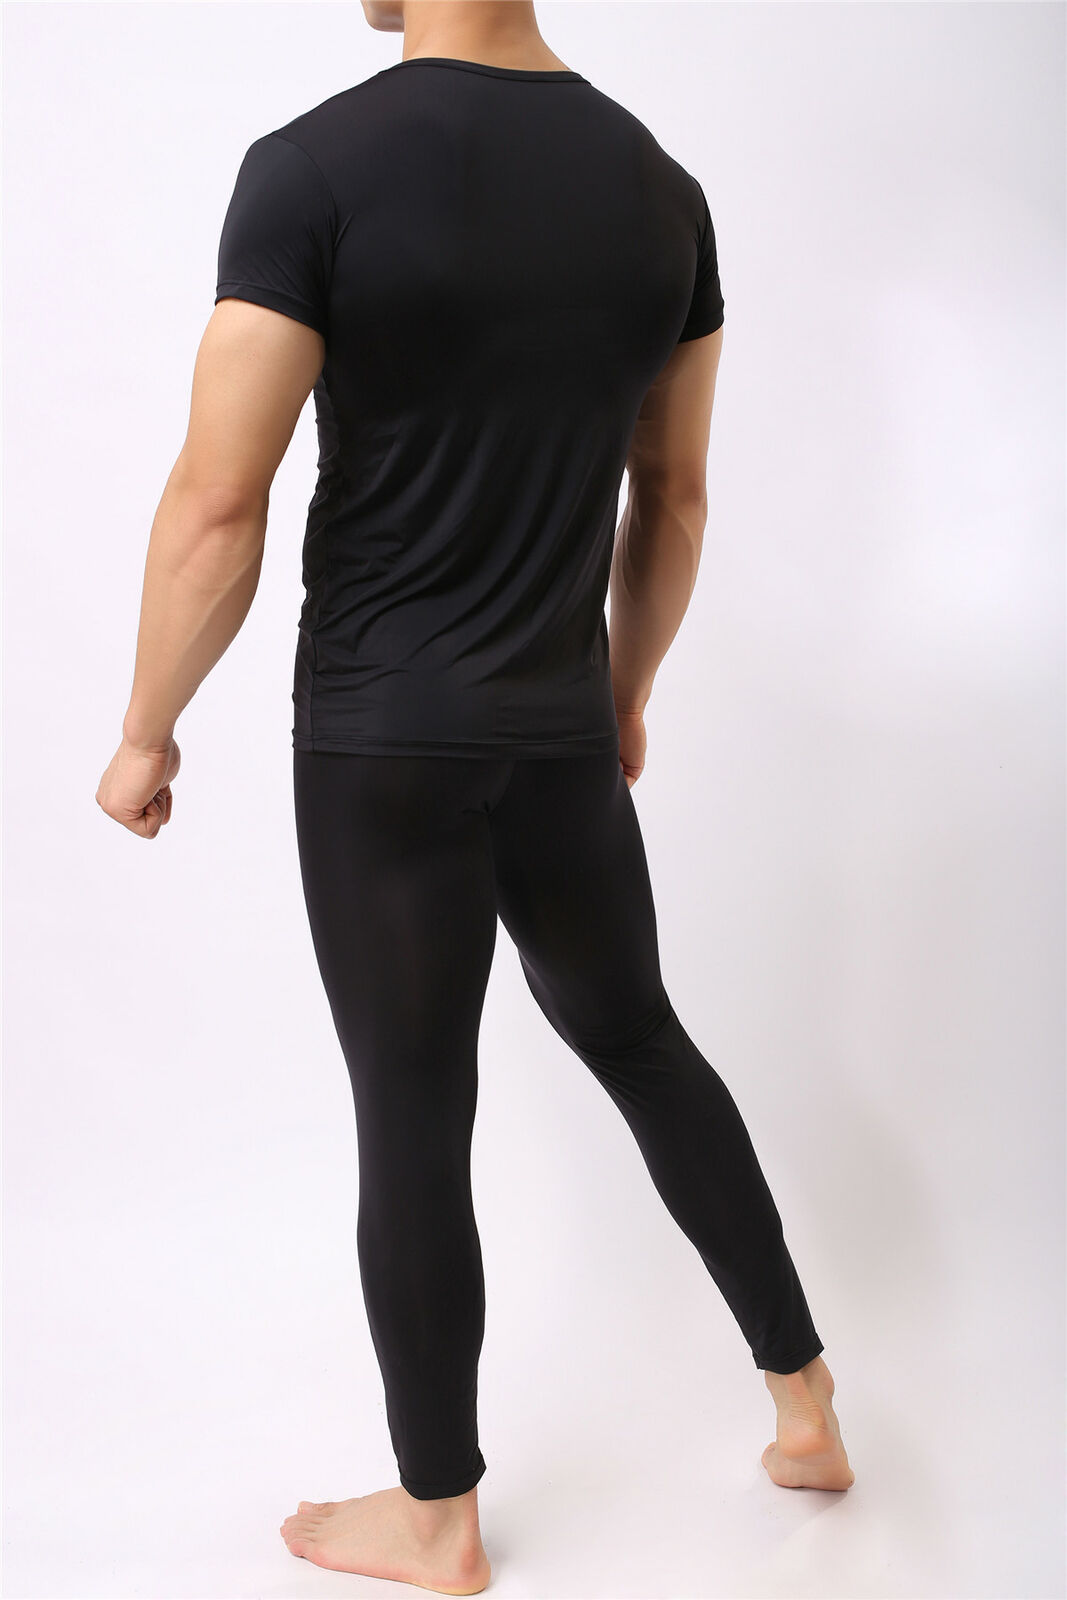 Mens Sports Casual Boxer Legging Pants T-shirt Thin Tight Gym Solid Underwear